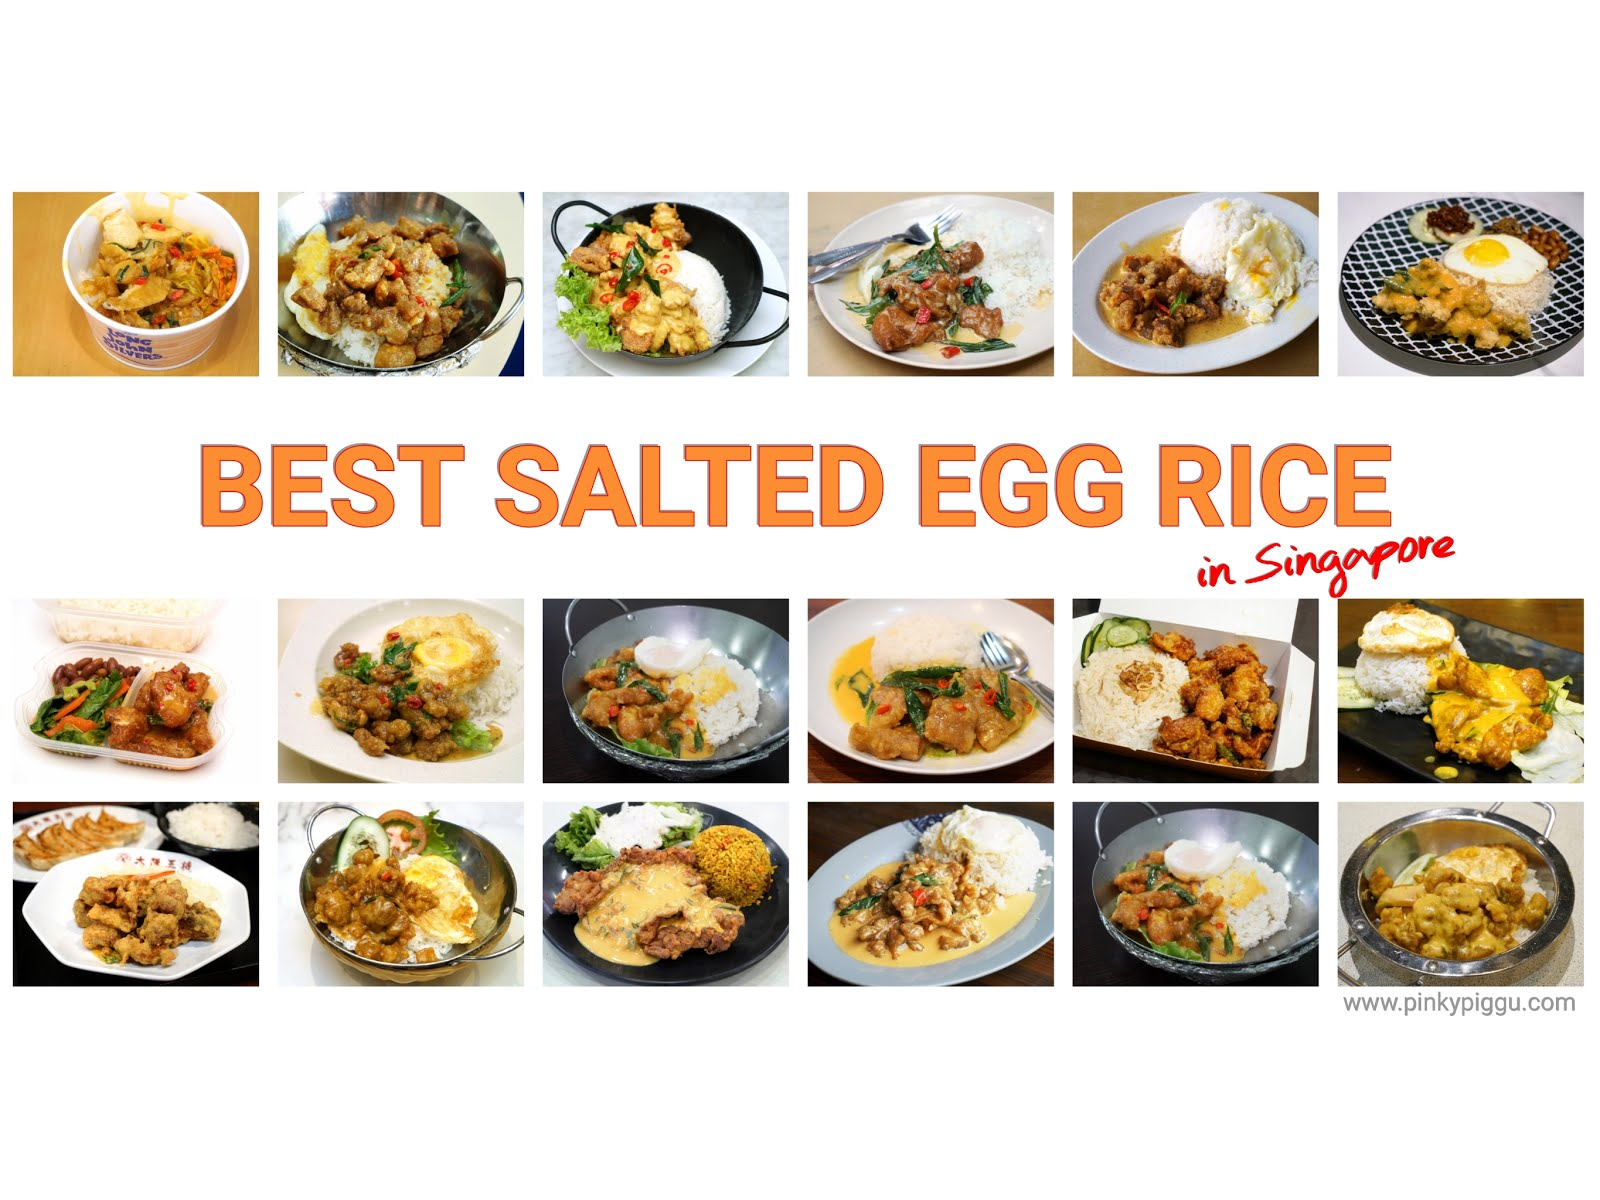 BEST Salted Egg Rice In Singapore! Chicken, Pork, & Halal Options Included!